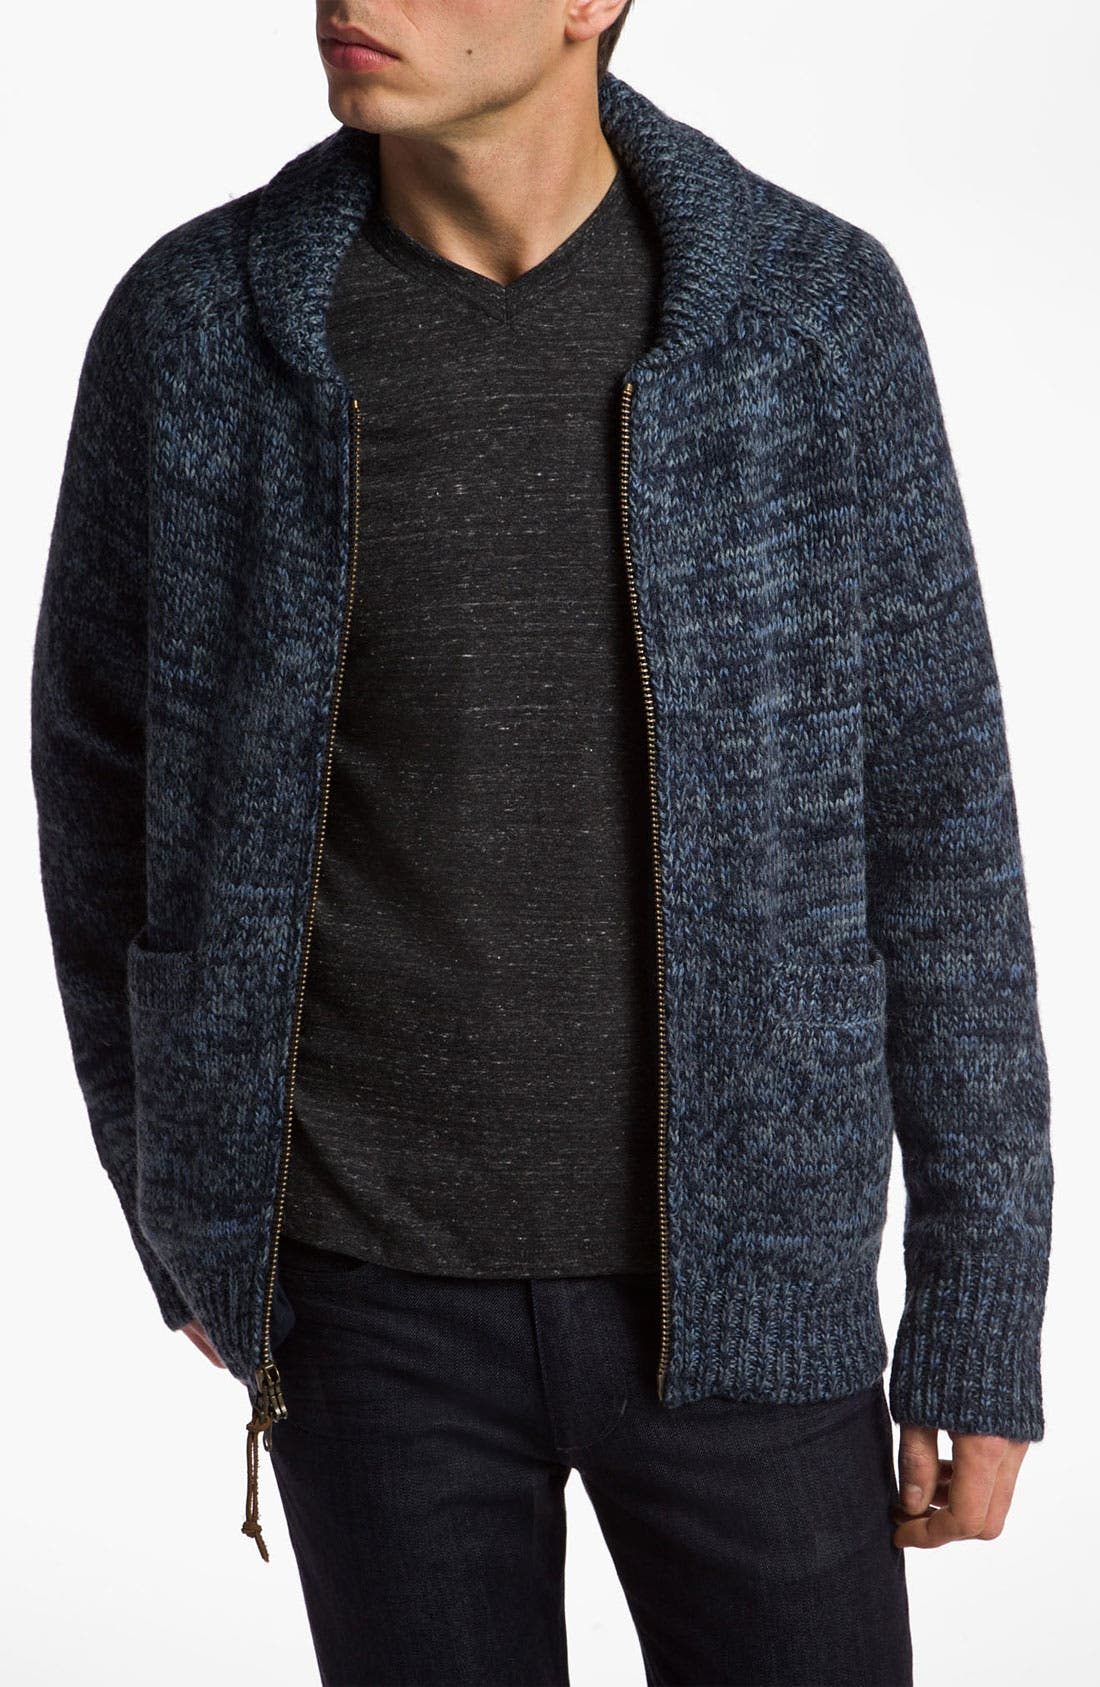 Main Image - VSTR 'Captains' Wool Blend Zip Cardigan